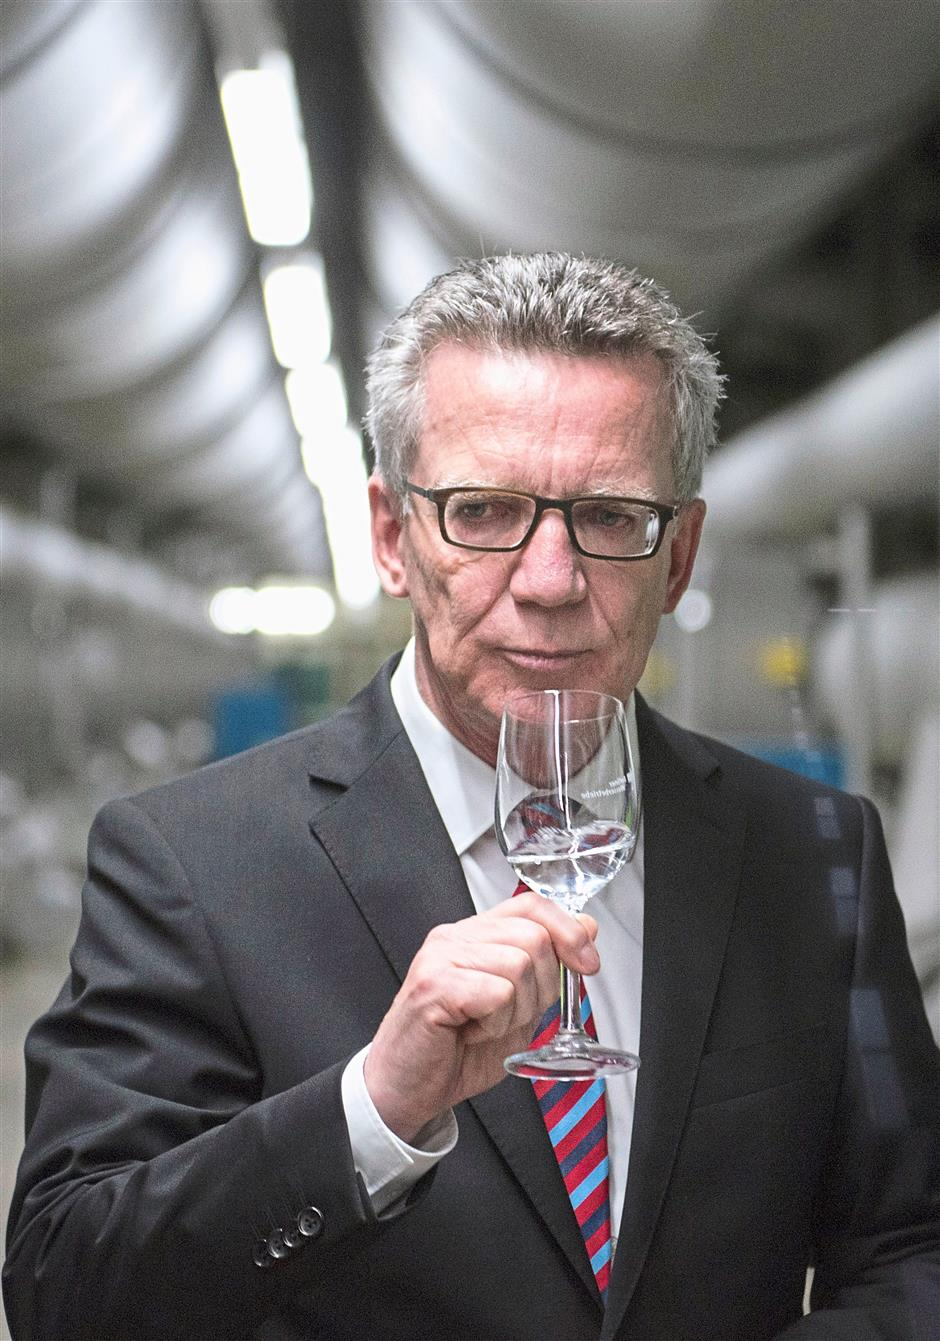 German Interior Minister Thomas de Maiziere holds a glass of tap water during a visit to Berlin water supplier Berliner Wasserbetriebe in August. Germany, along with countries like Austria, Belgium, China, Denmark, Japan and Hungary, do not add fluoride to their water supply. Photo: Reuters